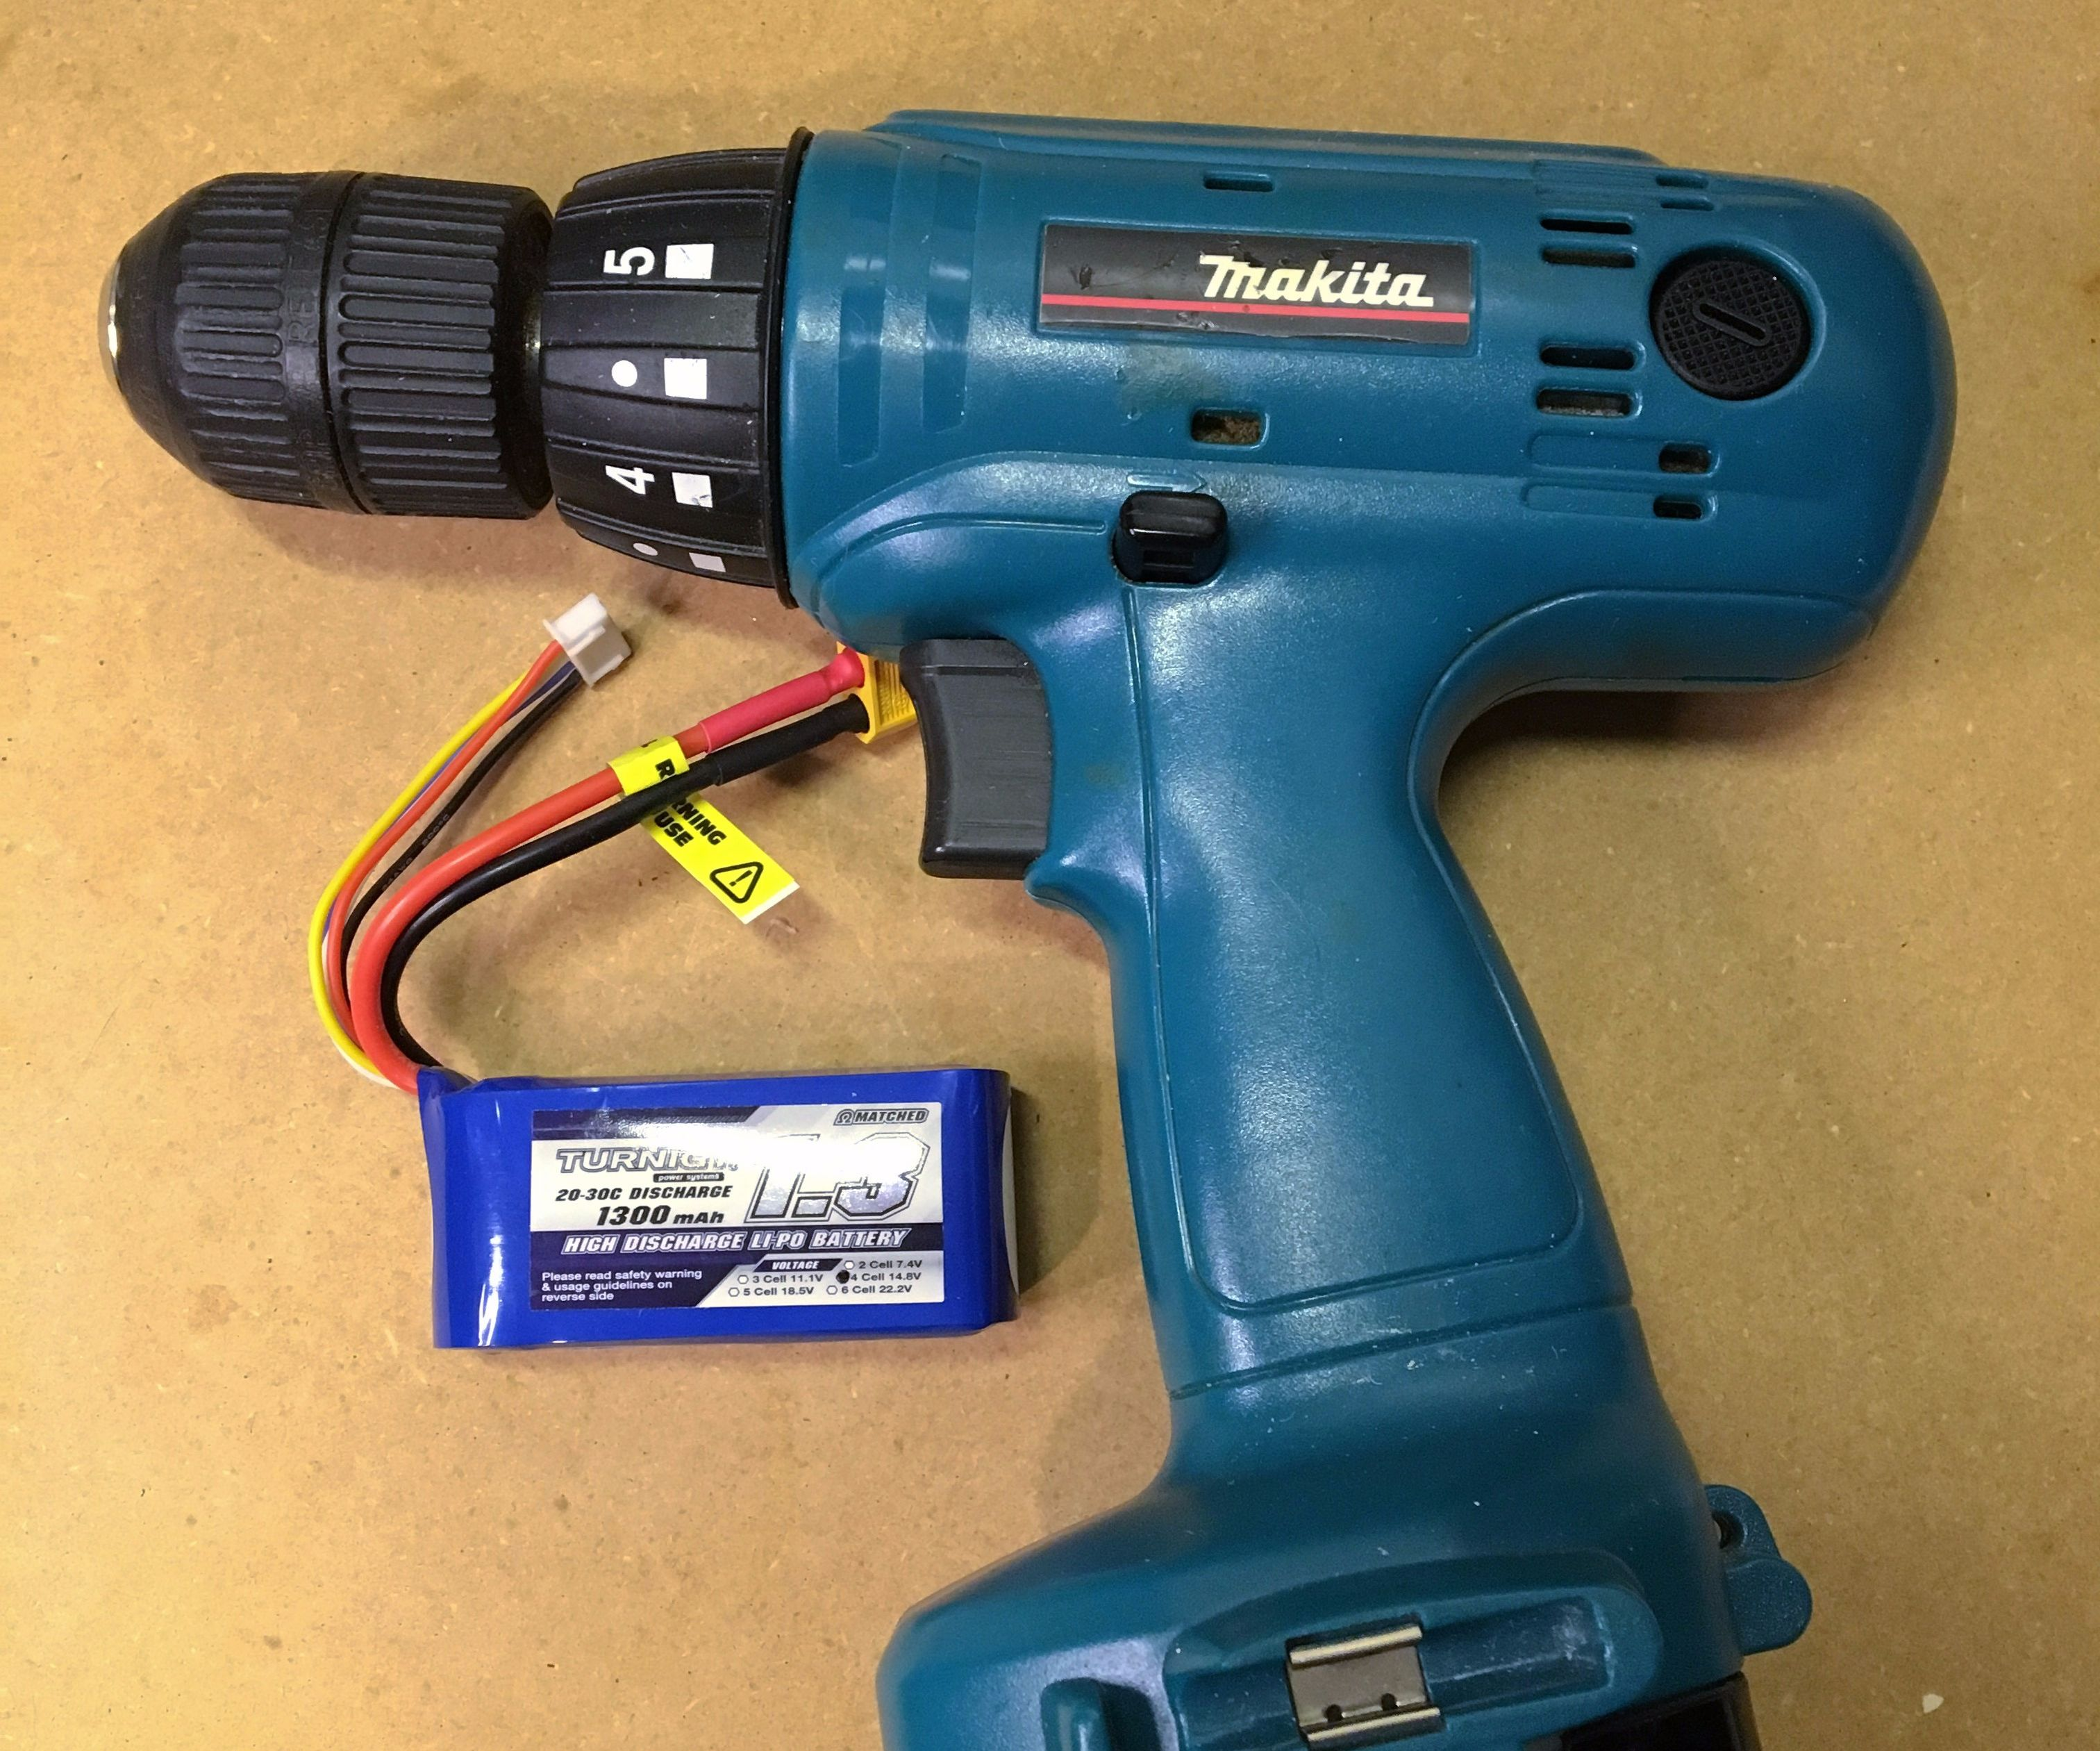 convert old cordless tools to lithium power 5 steps with pictures battery wiring diagram in addition hitachi 18 volt battery charger [ 3024 x 2521 Pixel ]